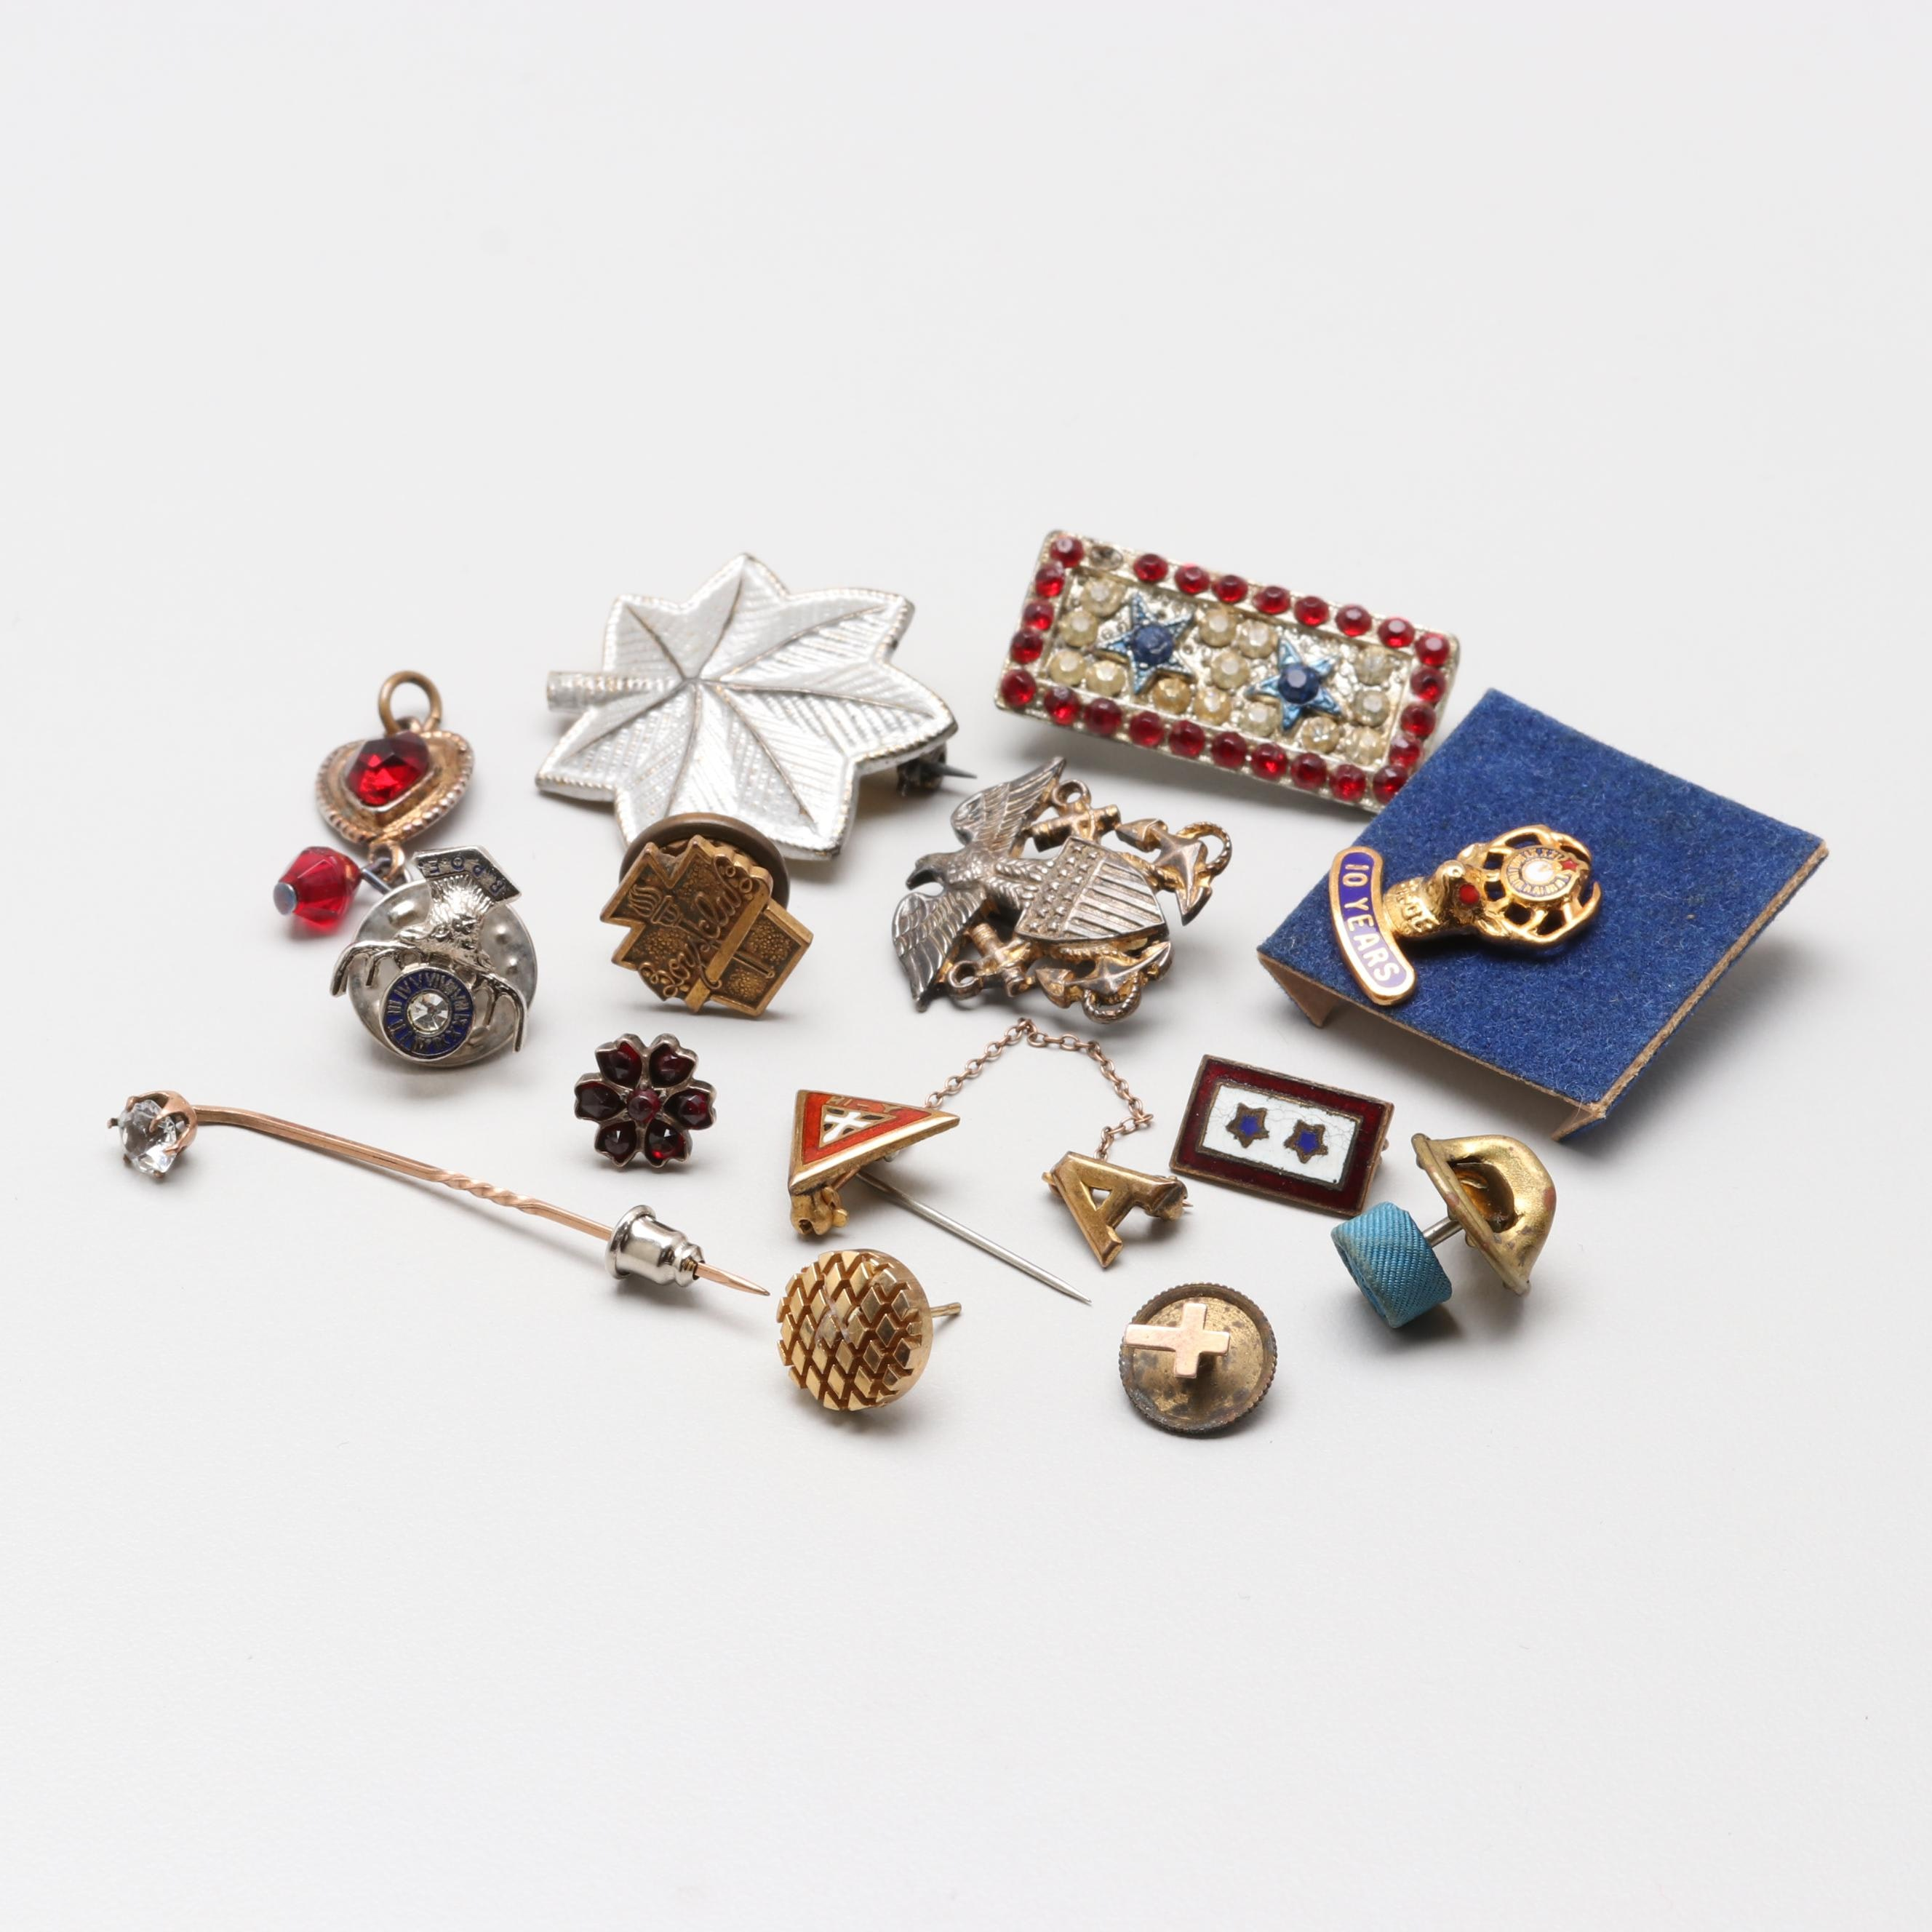 Jewelry Assortment Including Garnet, U.S. Navy and Elks Lodge Pins